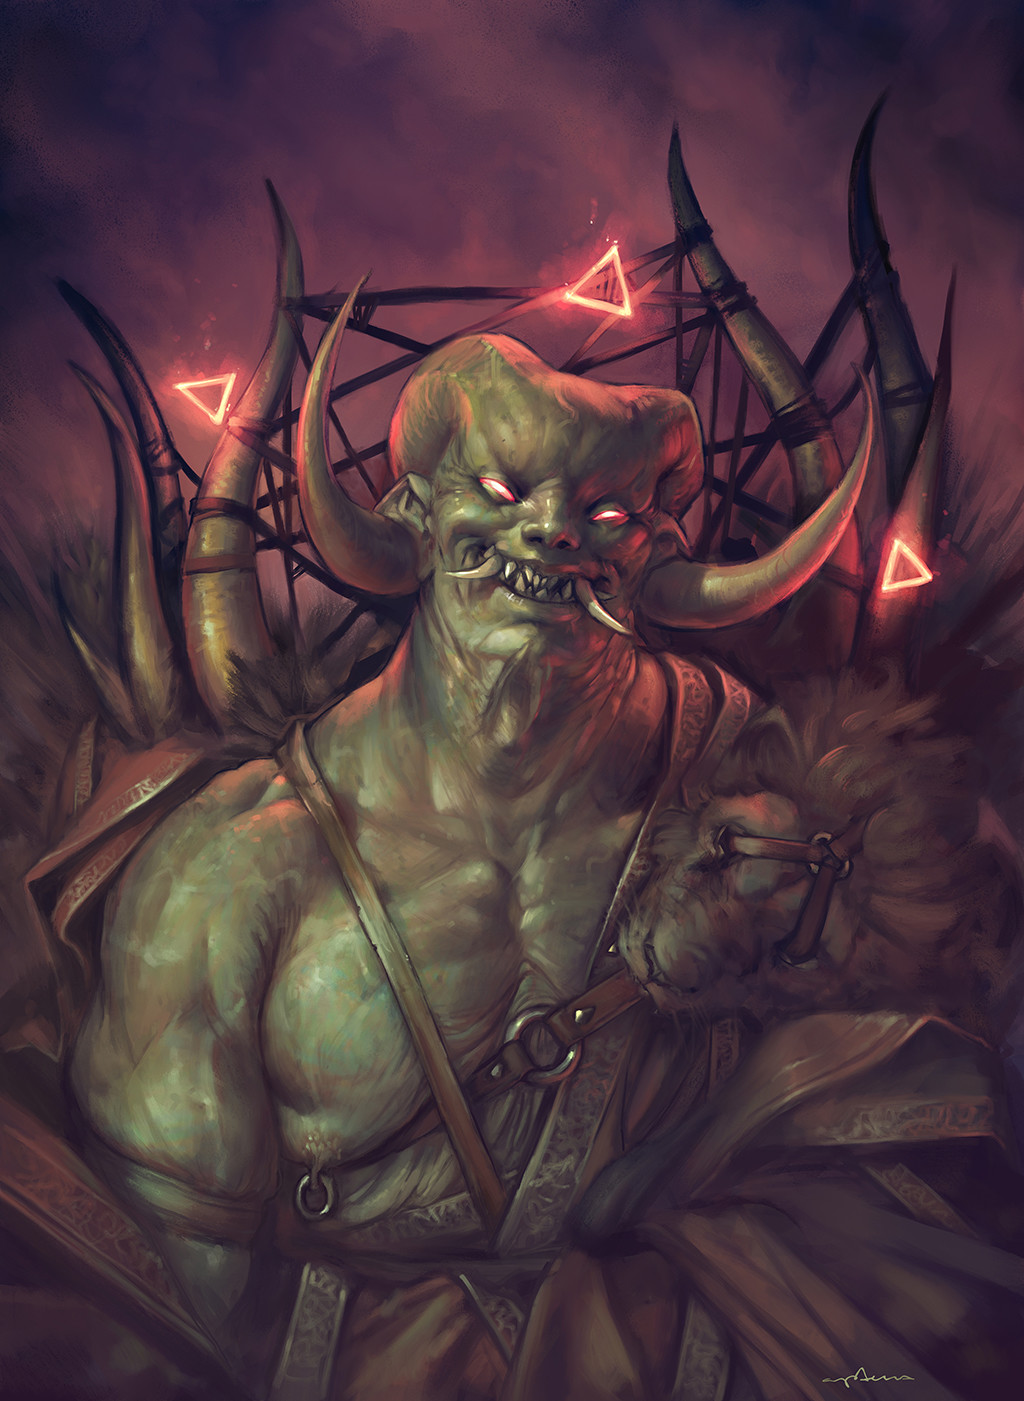 Sabbas Apterus illustration A hell dude